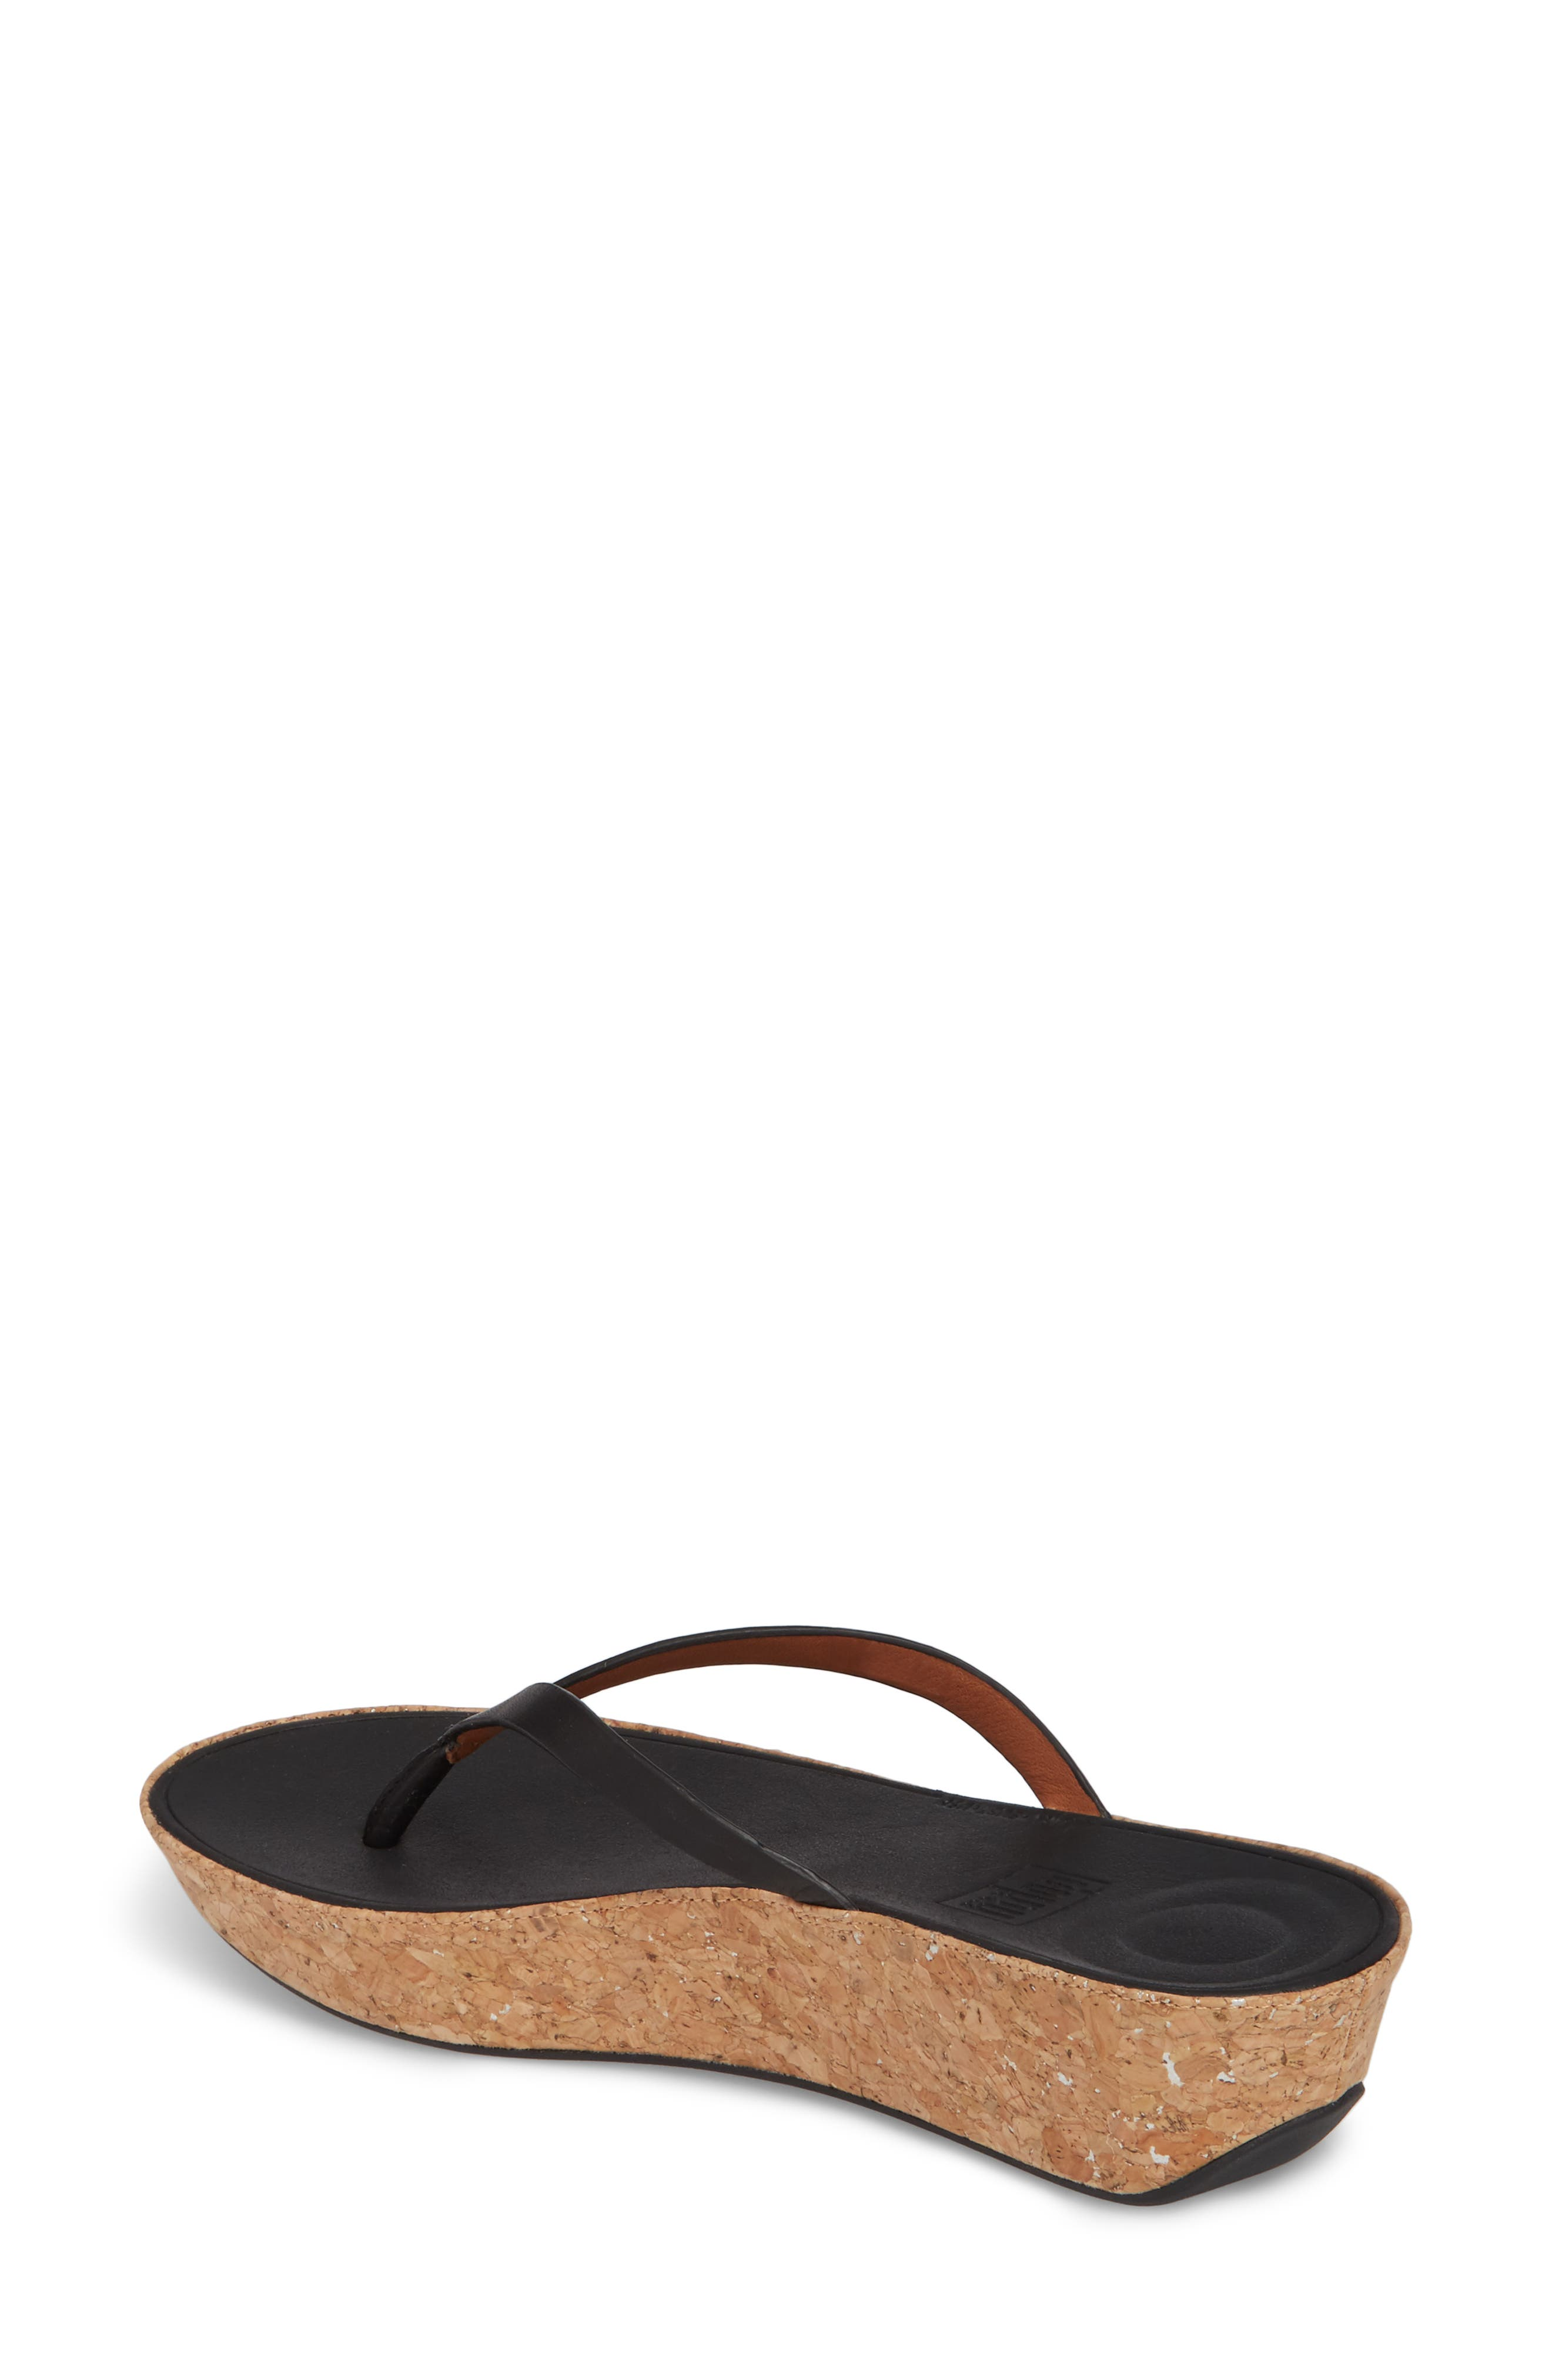 FITFLOP,                             Linny Wedge Flip Flop,                             Alternate thumbnail 2, color,                             001